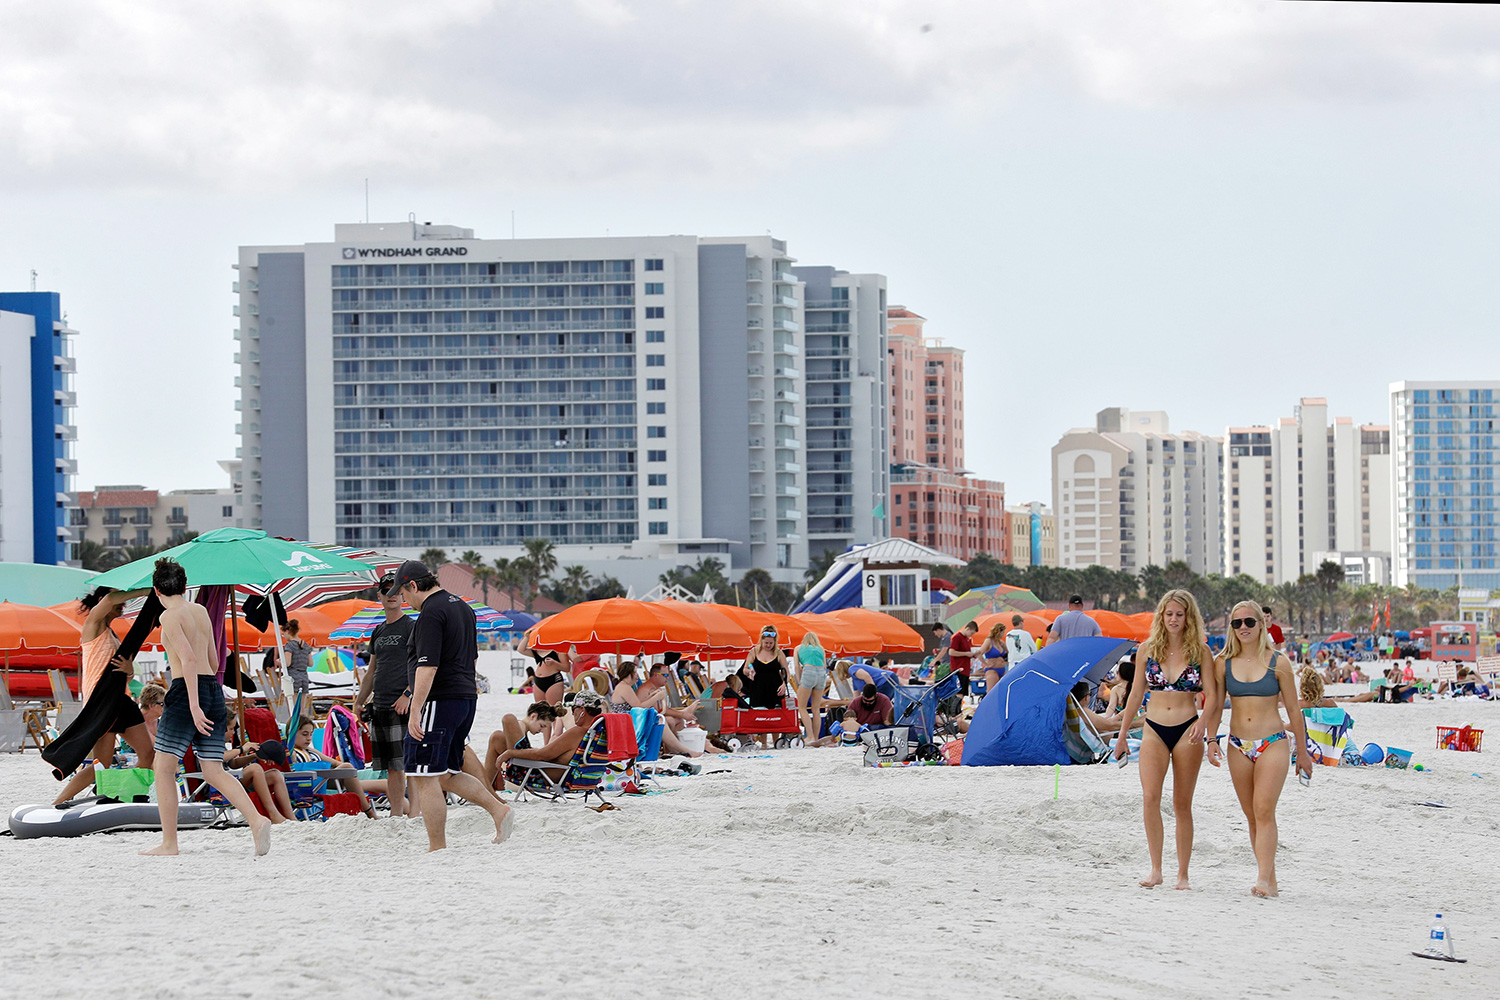 Some Florida Beaches Reopen After Coronavirus Shutdown | PEOPLE.com